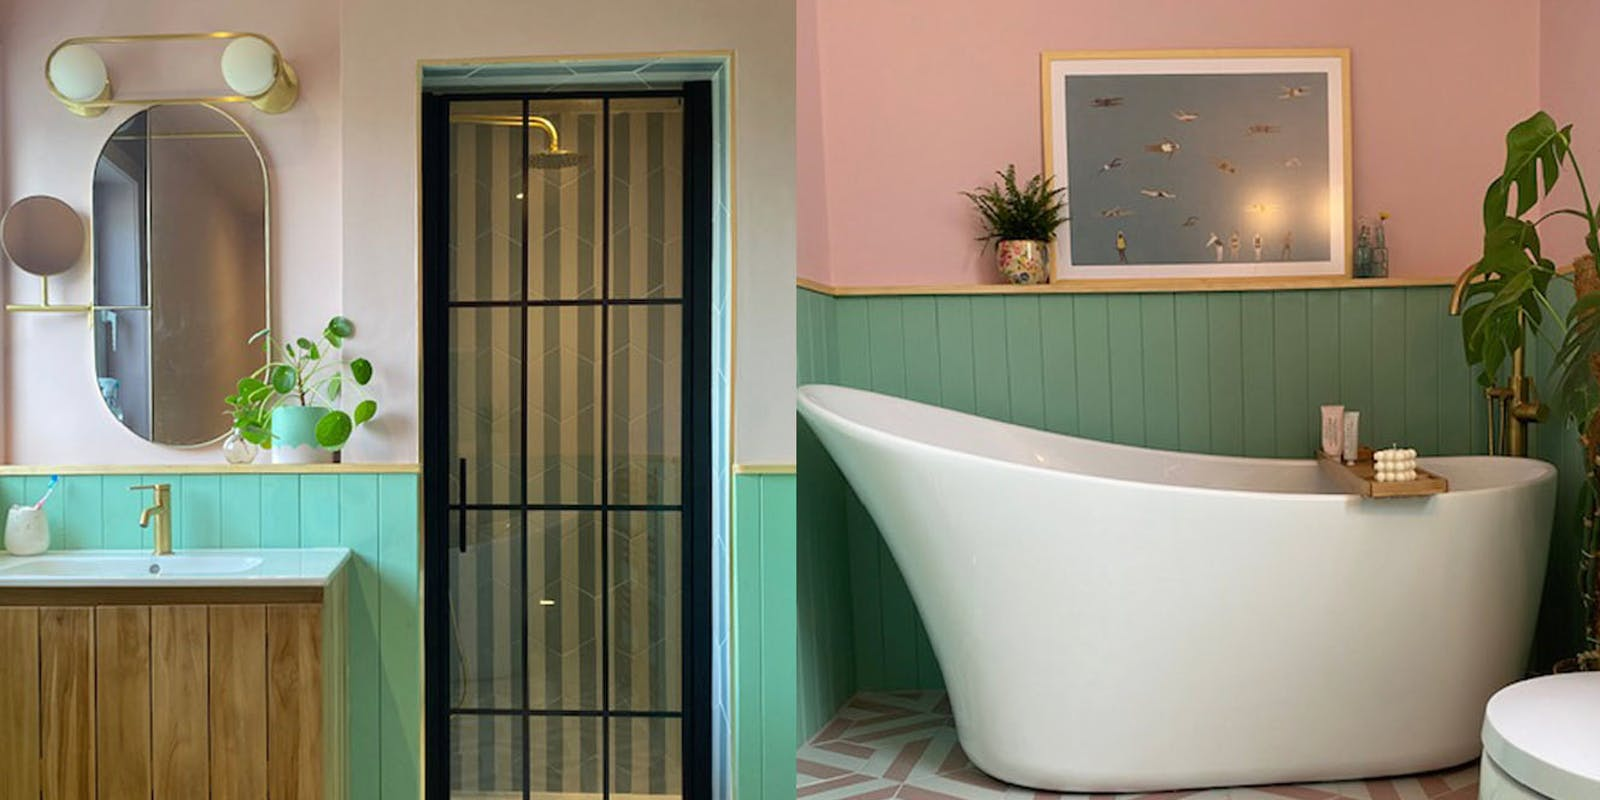 Bathroom with shower and bath tub painted in Lick Pink 03 and Green 08